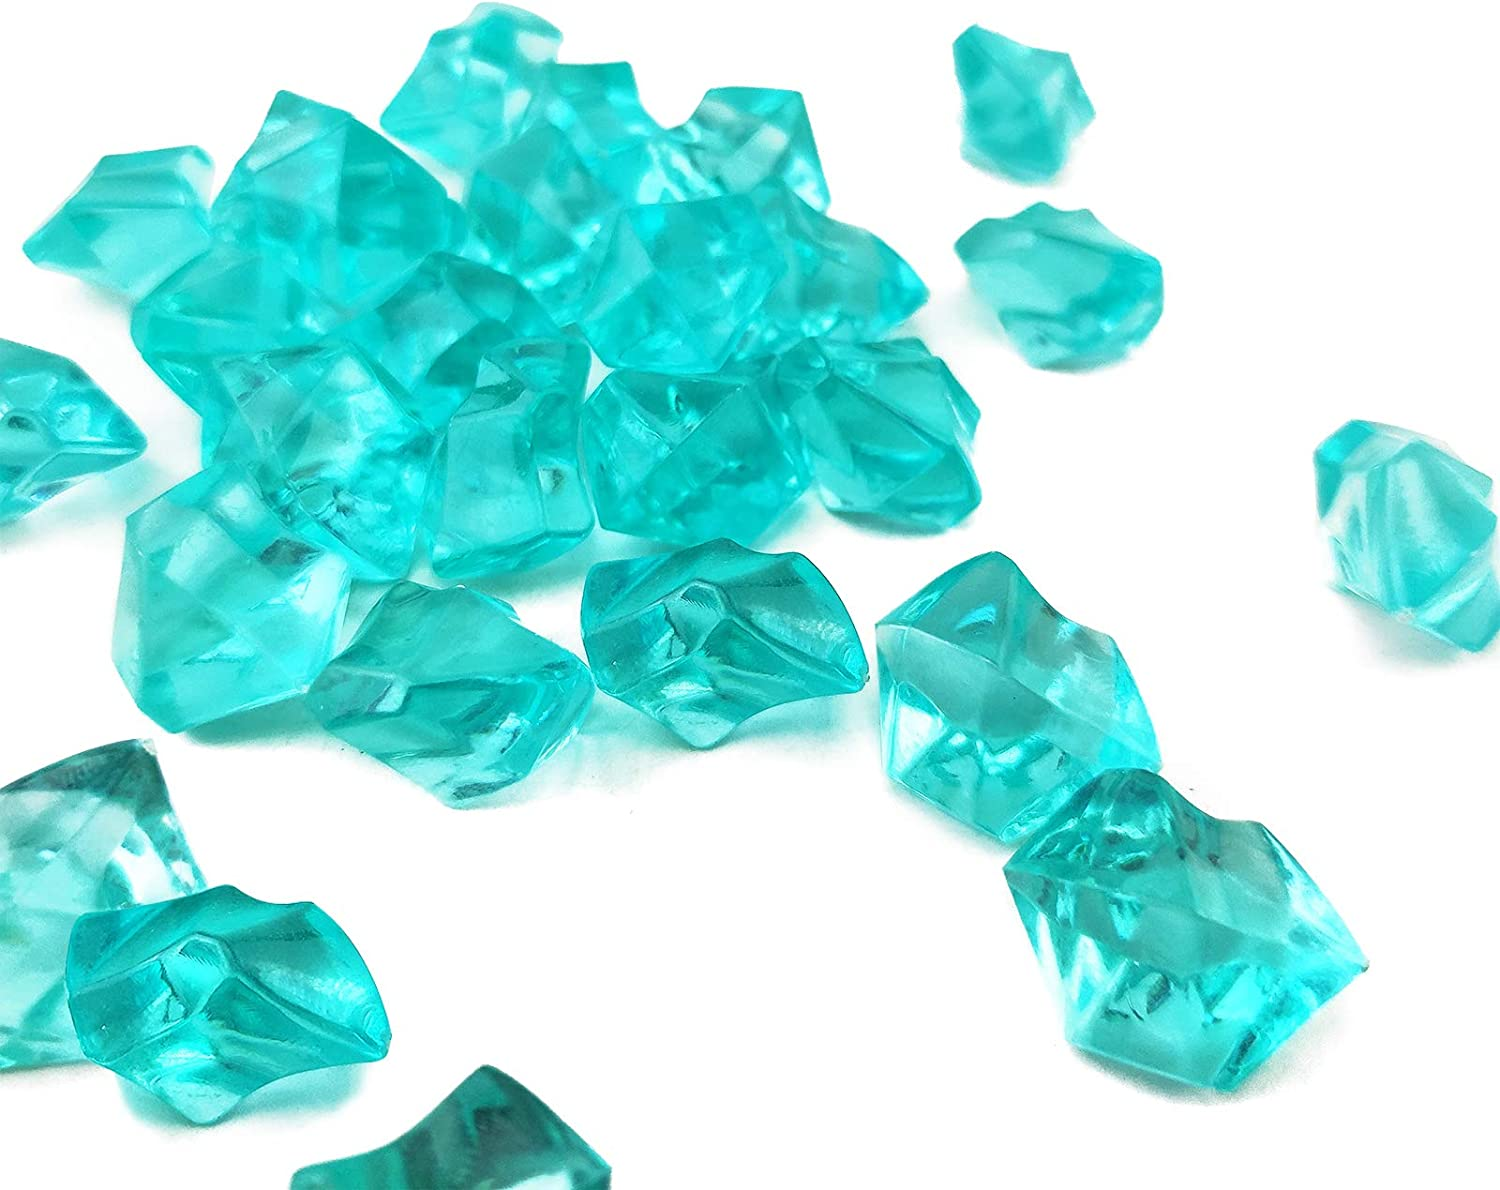 HappyFiller 175 PCS(1LB) Sea Blue Acrylic Ice Rocks Fake Diamonds Plastic Crystal Ice Cubes for Table Scatters,Summer Decor,Party Decoration,Candle Holder,Food Showcase